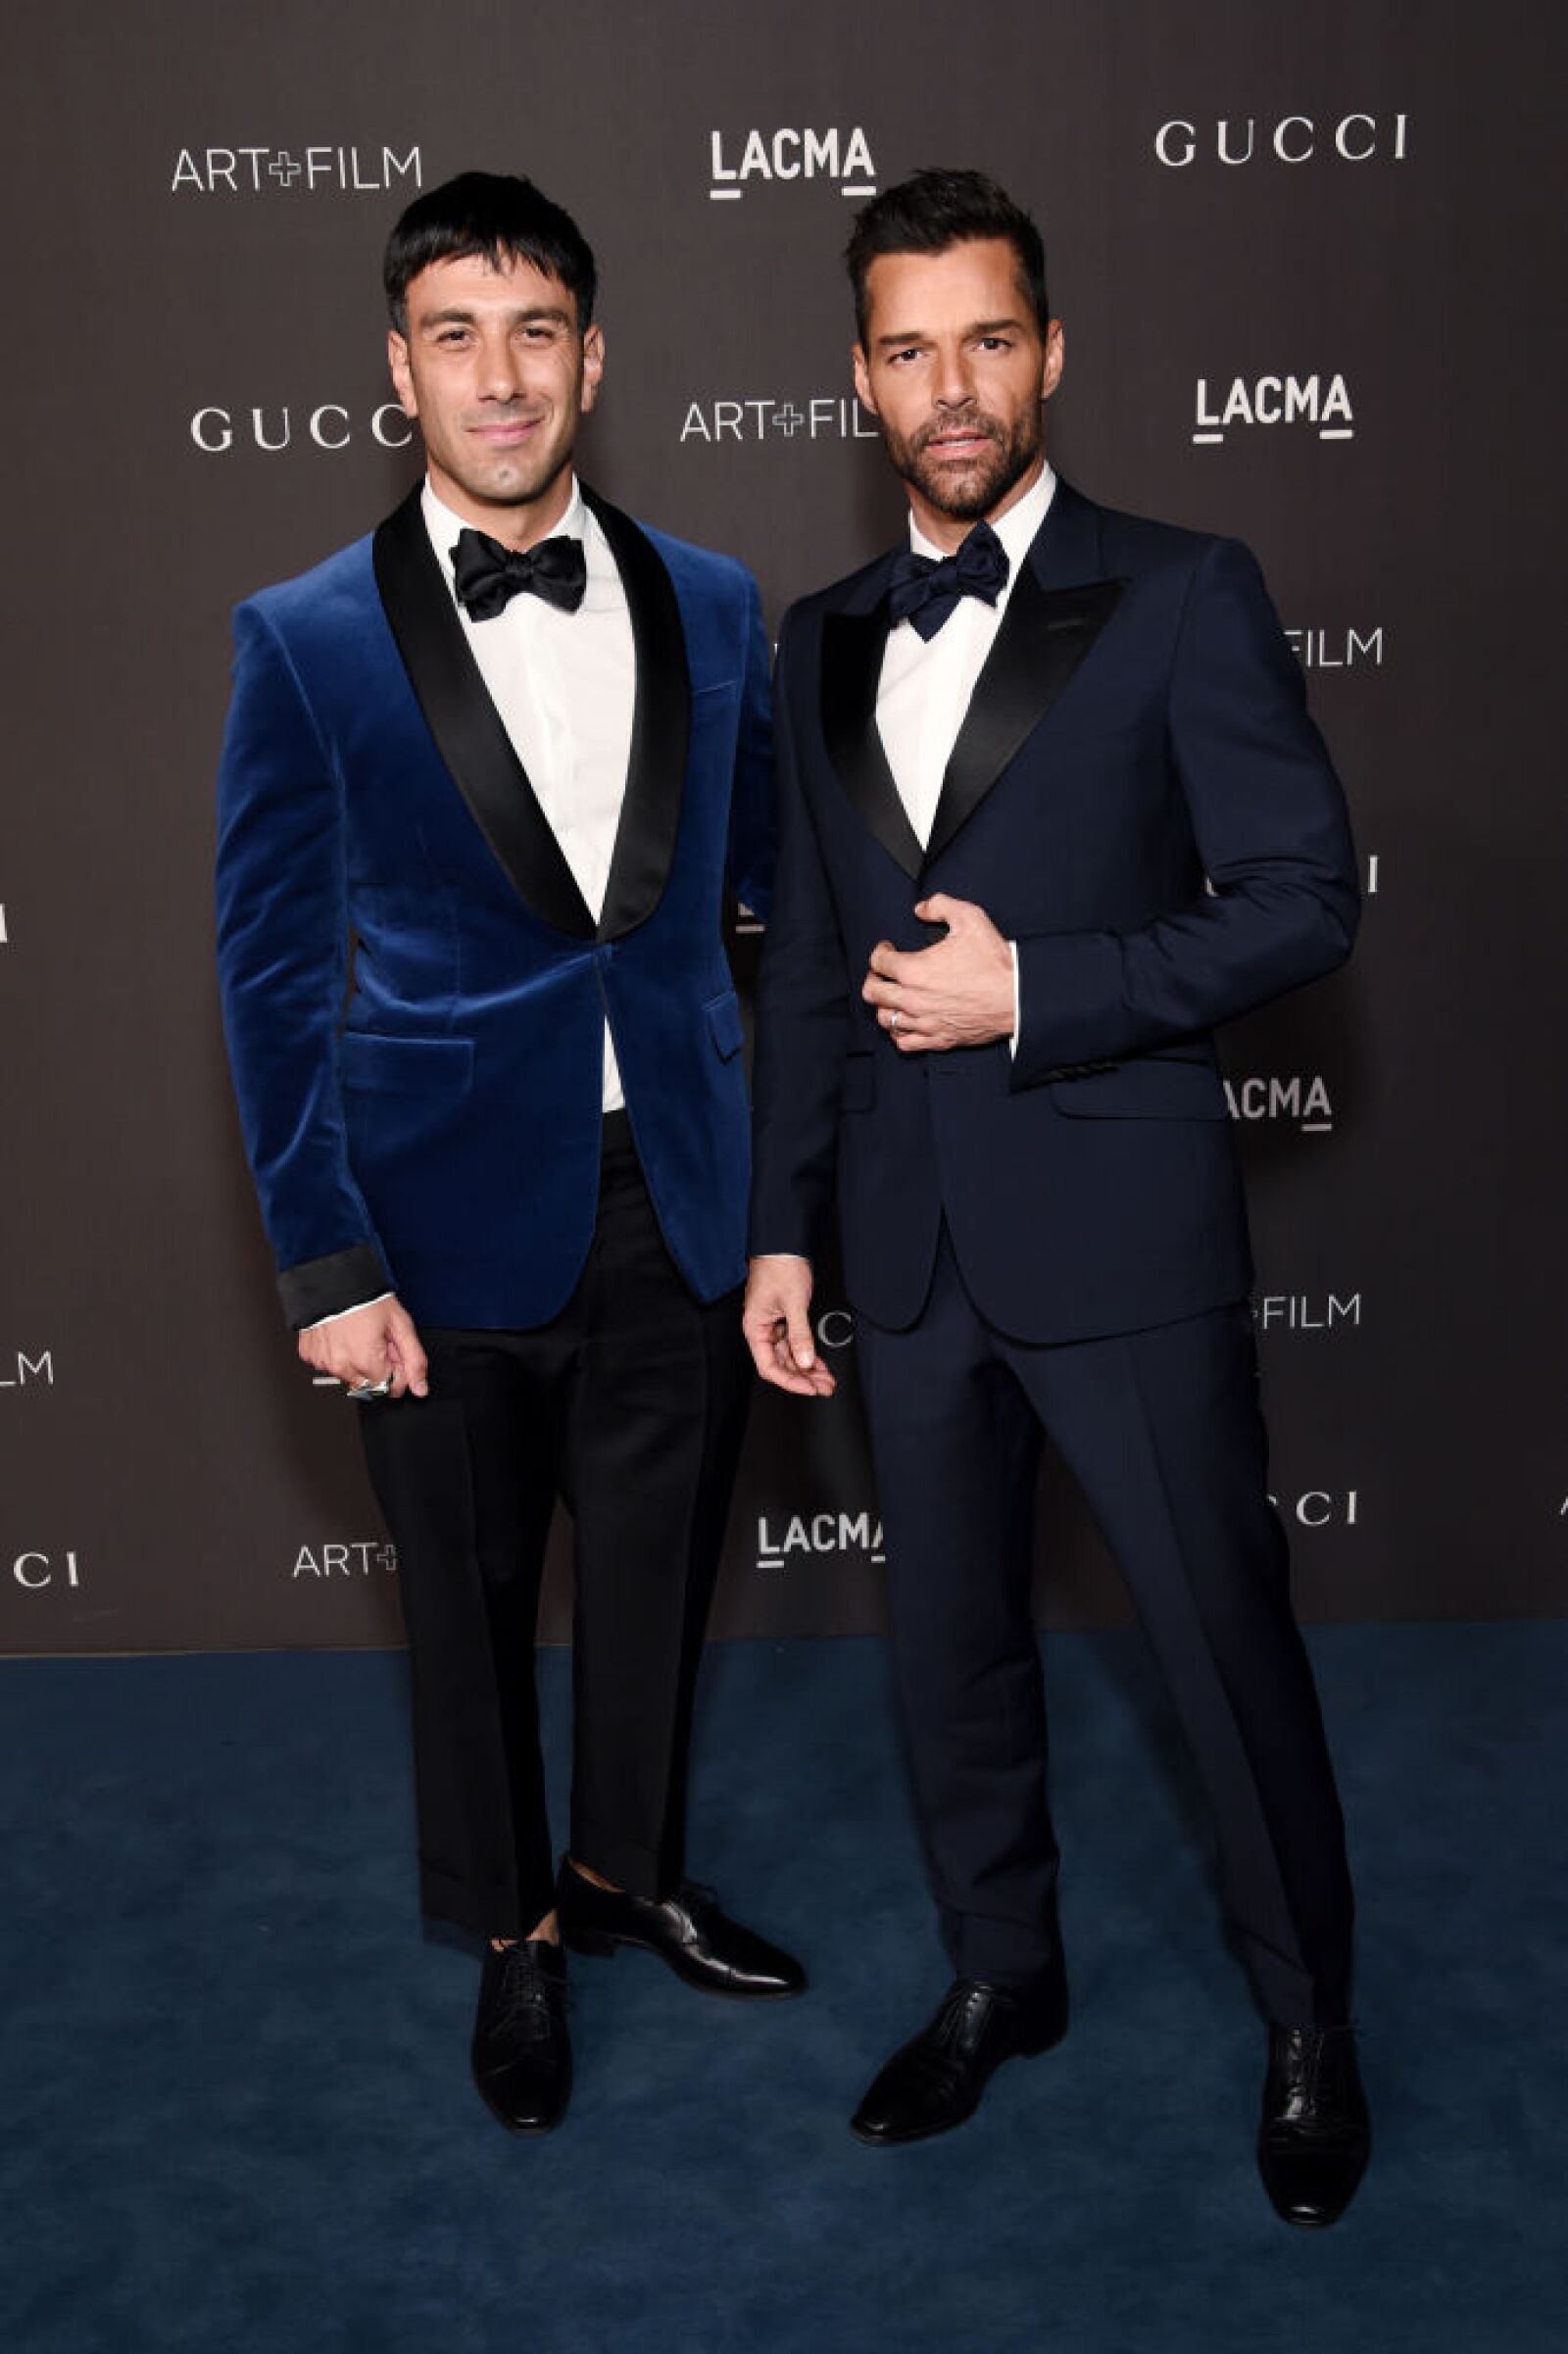 2019 LACMA Art + Film Gala Honoring Betye Saar And Alfonso Cuarón Presented By Gucci - Red Carpet